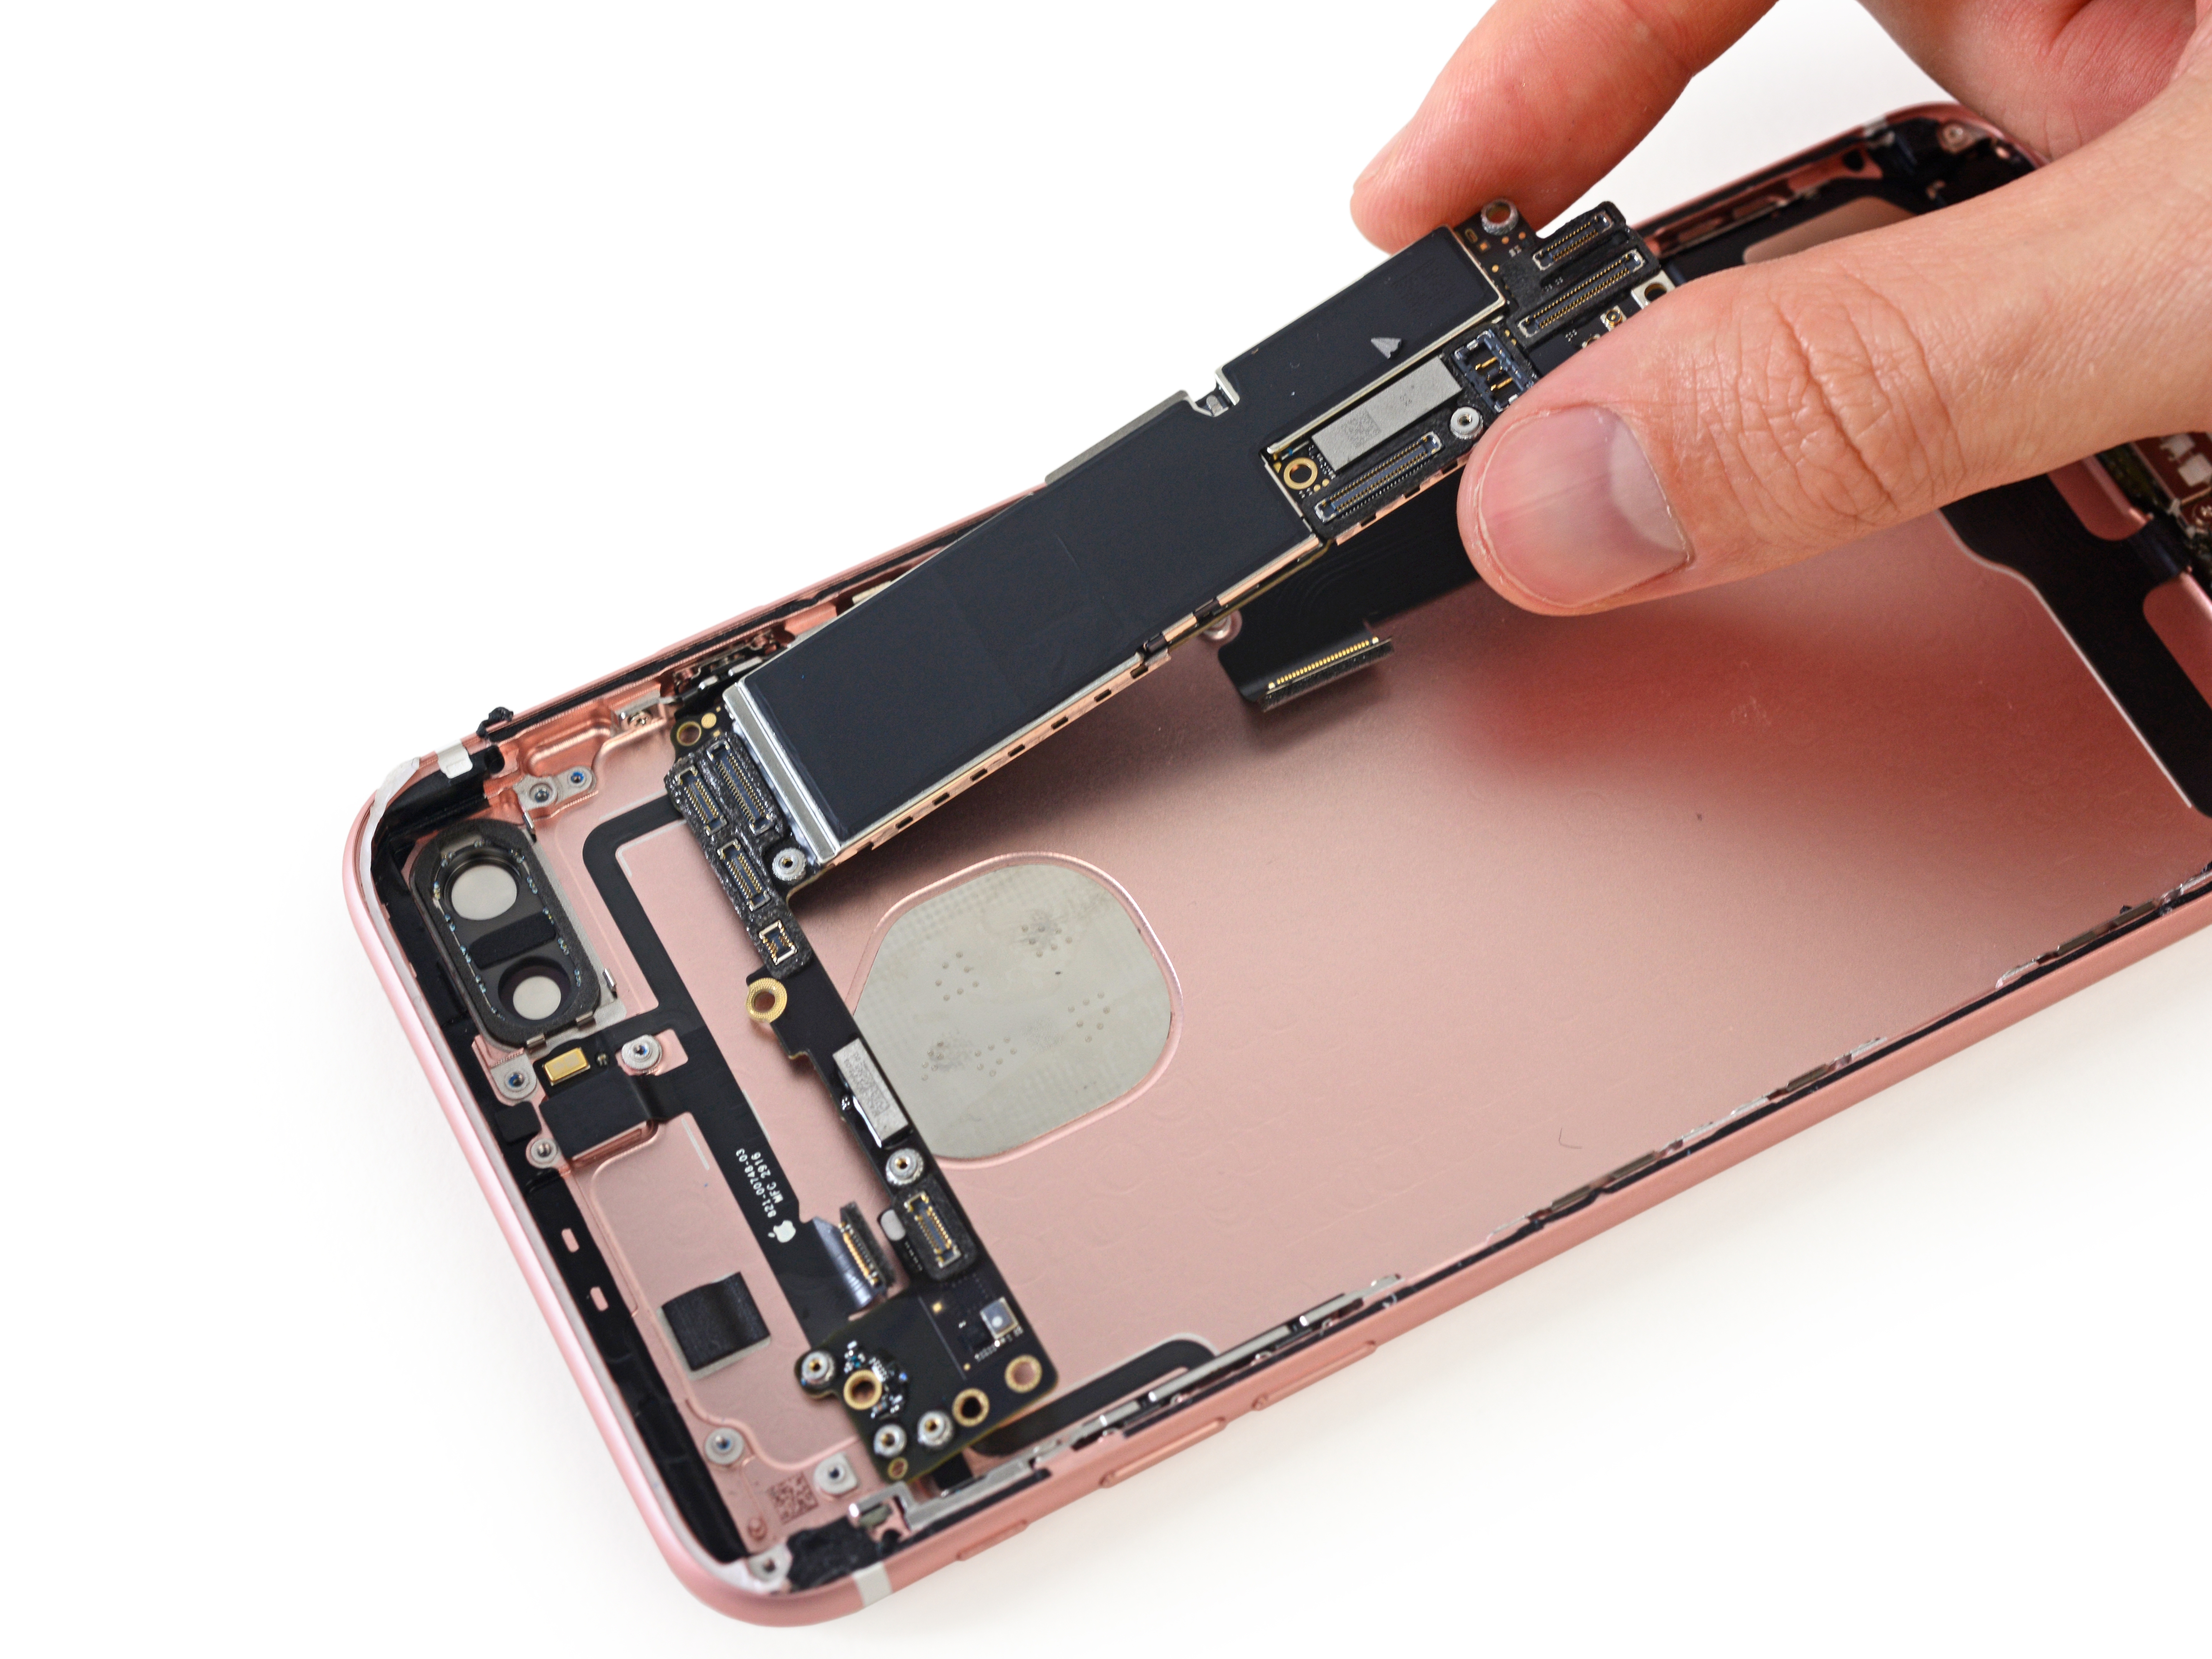 placa logica iphone 7 plus